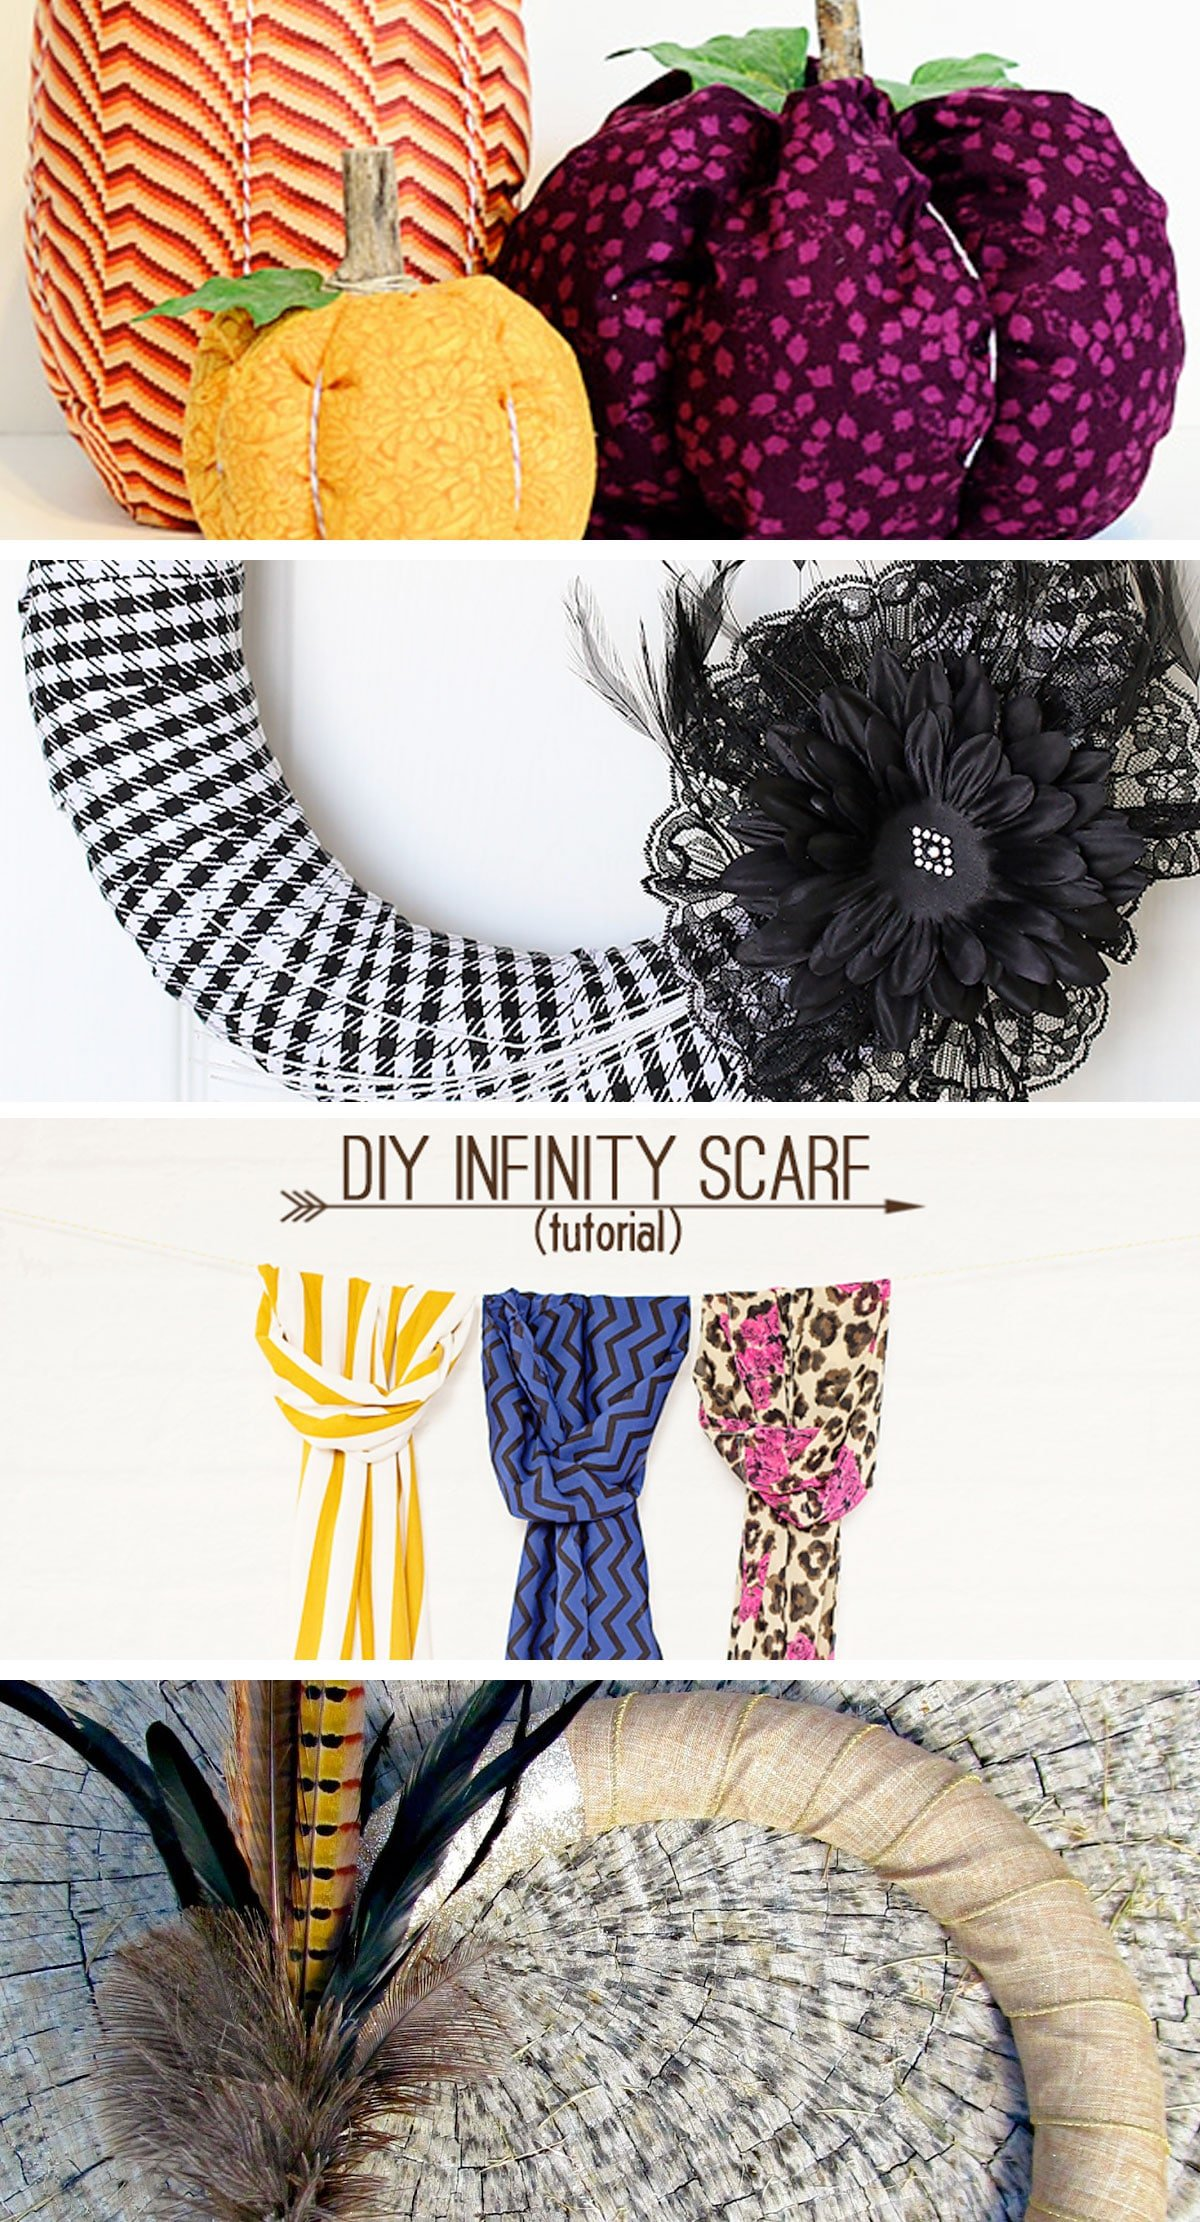 Inspiring Fall Projects to Try! /// Pinworthy Projects Party Features /// Fabric Pumpkins, Halloween Wreath, DIY Infinity Scarves, Feather Wreath